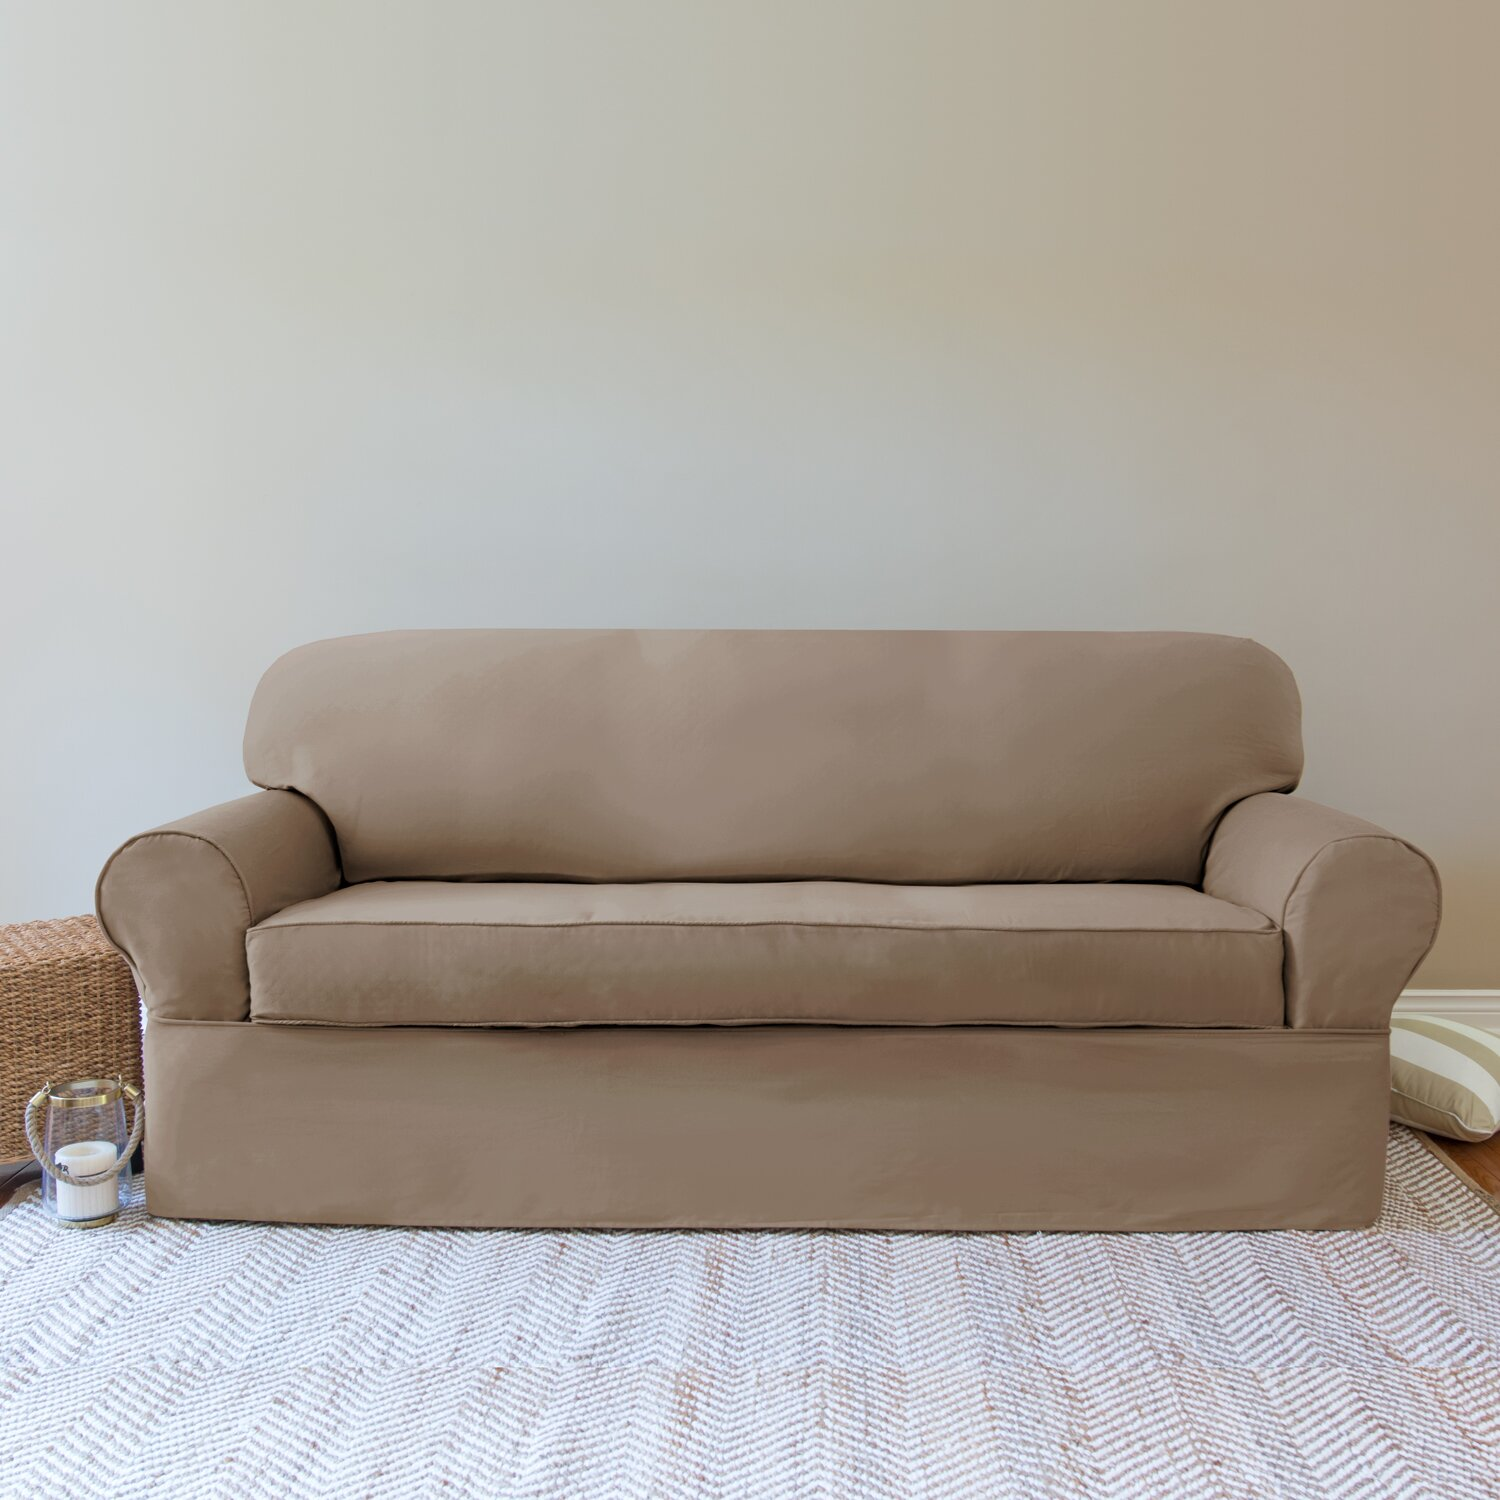 rosecliff heights solid sofa slipcover with beige